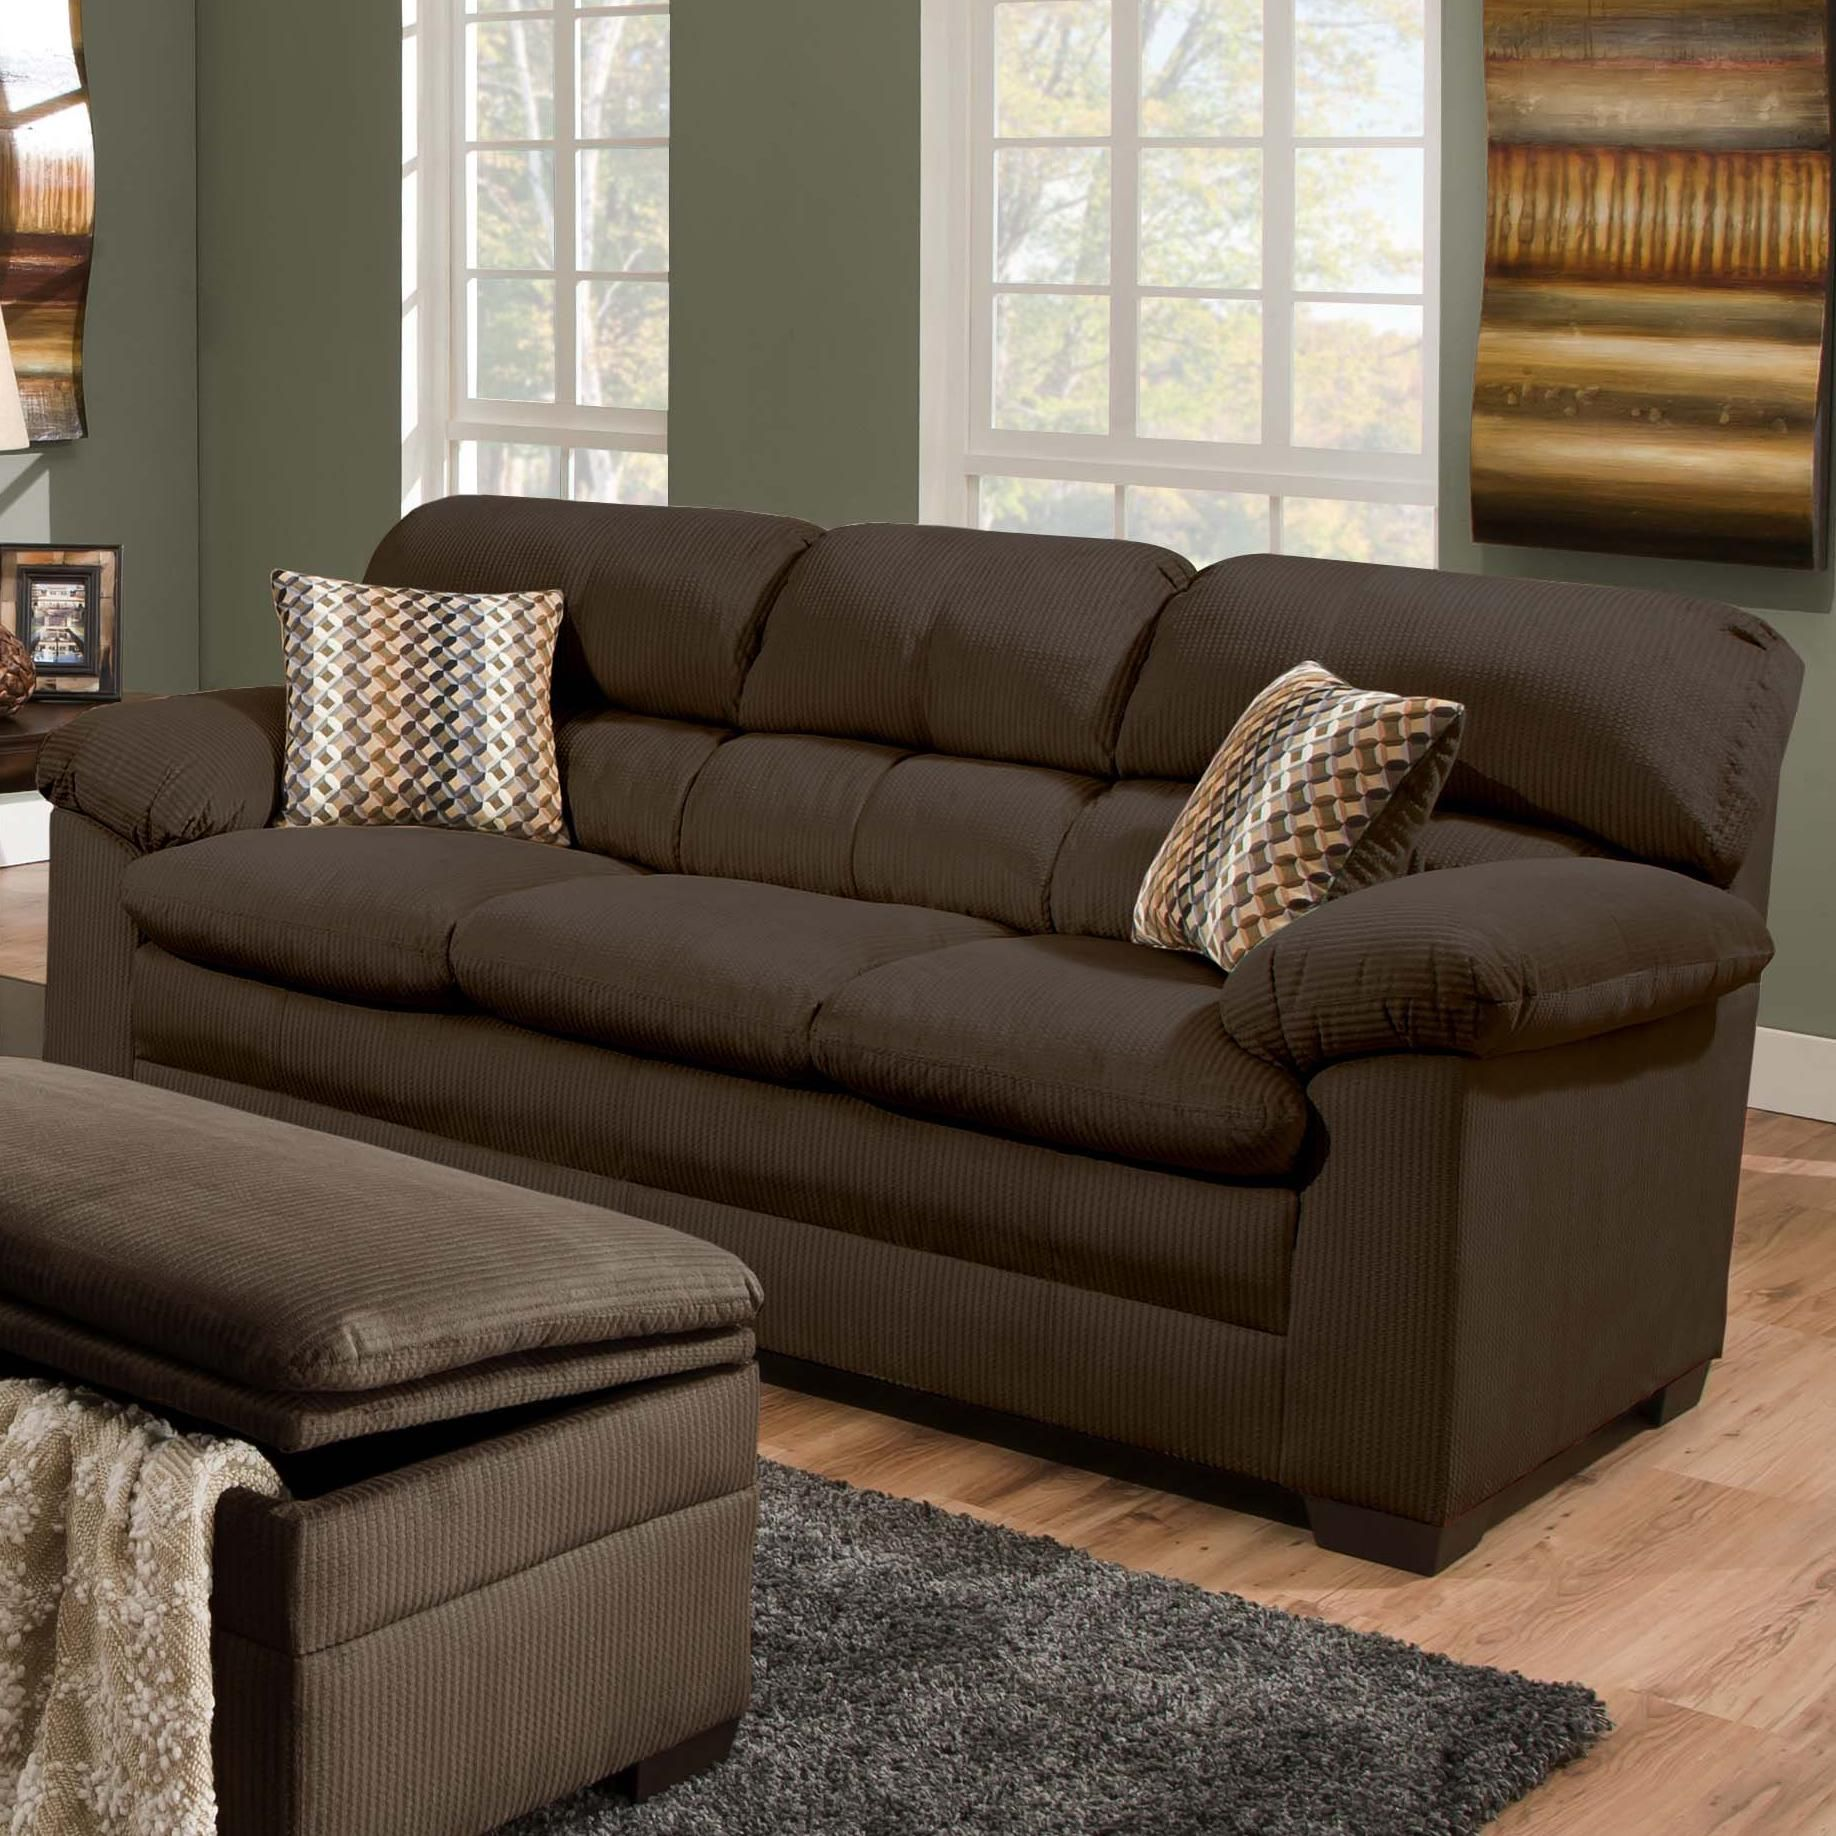 3685 Sofa by United Furniture Industries furniture